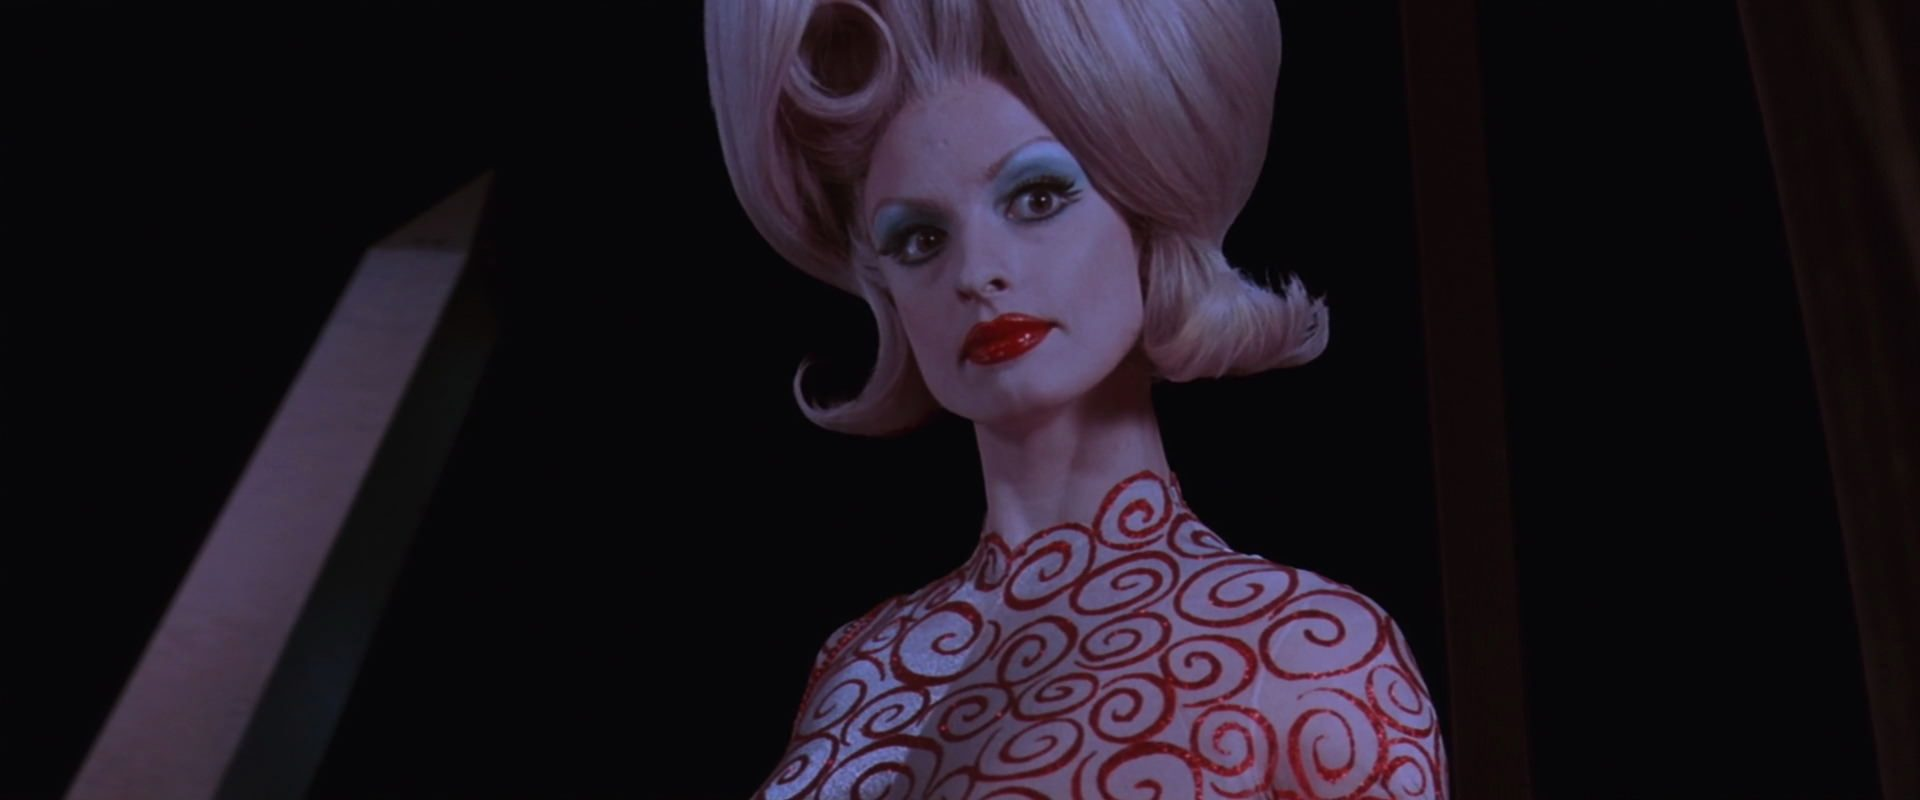 Martian Girl (Mars Attacks!)